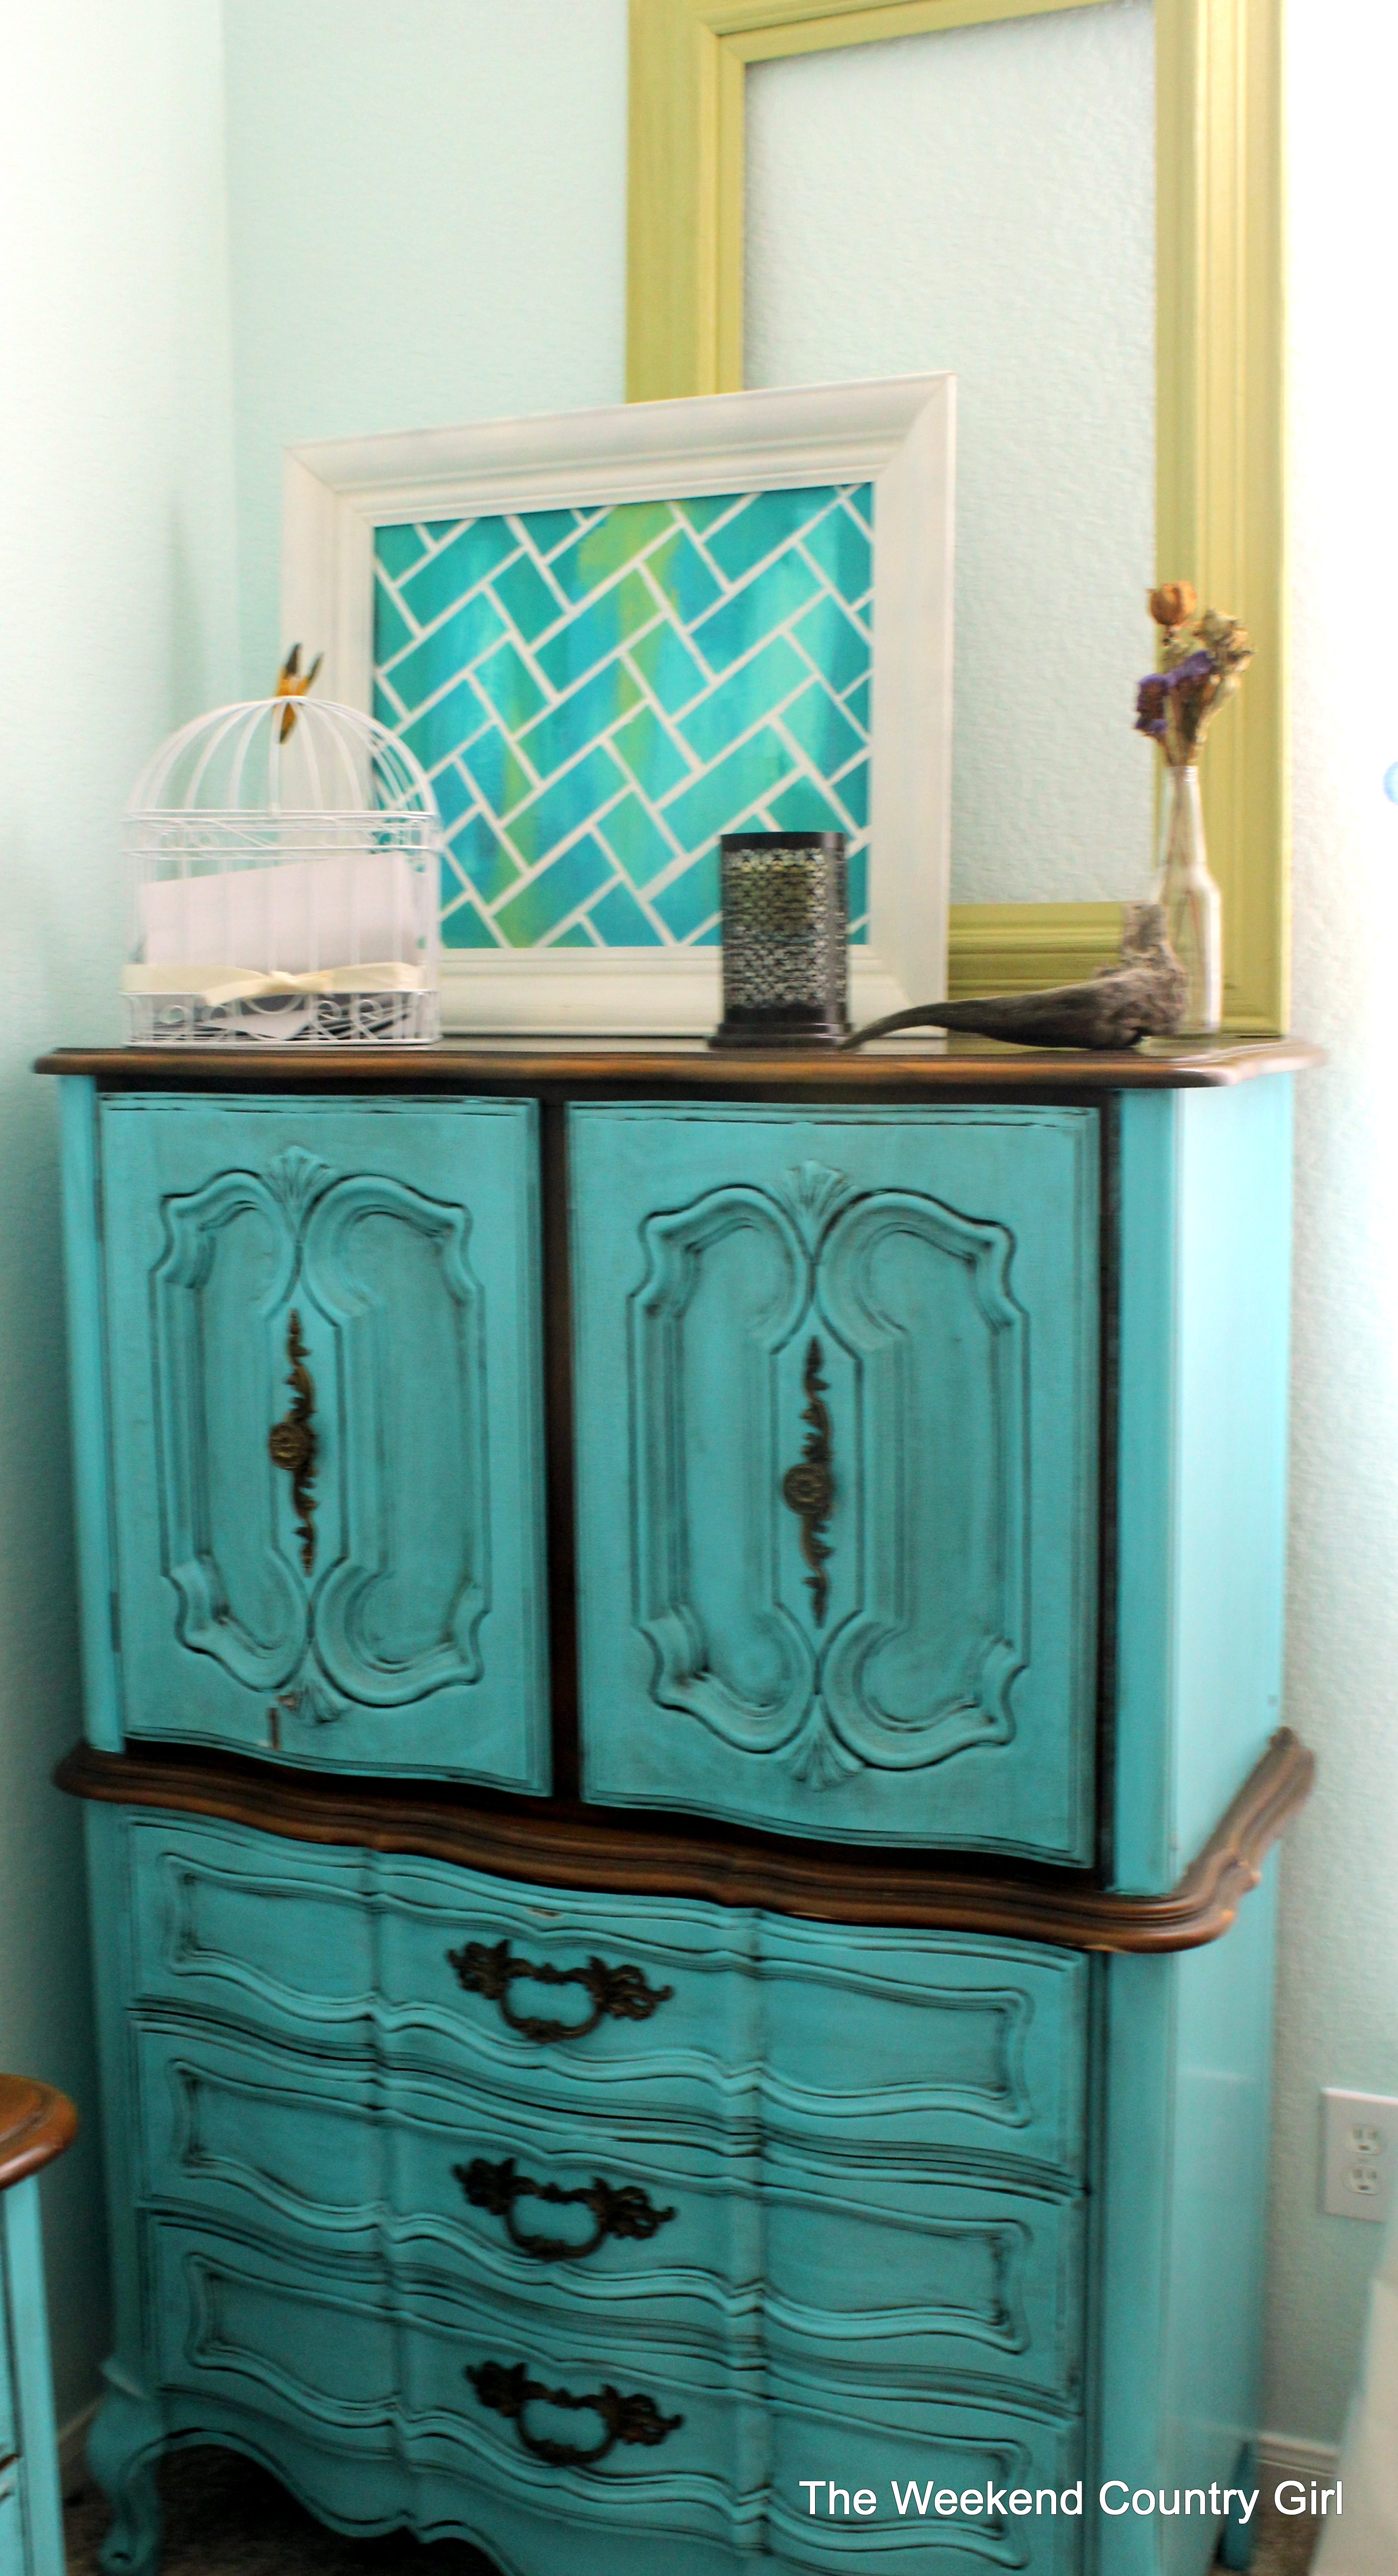 dixie sideview technique nighstand blue turquoise make to painters allthingsnewagain big and paint beginner painted nightstand blended mistakes fix furniture how belle